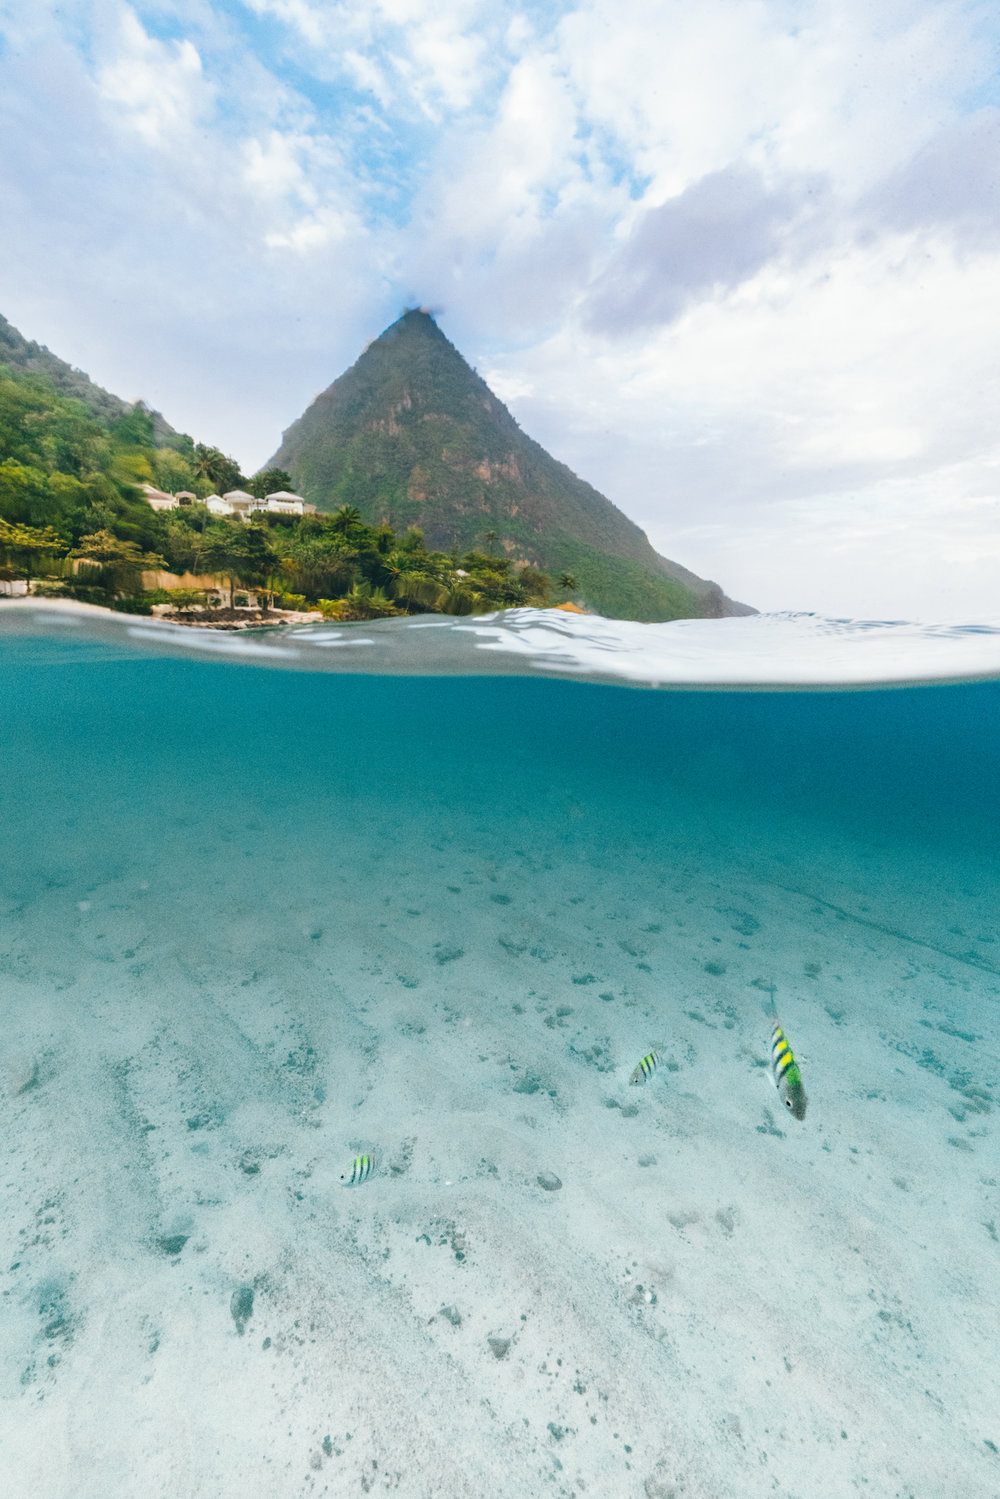 Underwater in St. Lucia with Piton mountains.jpg